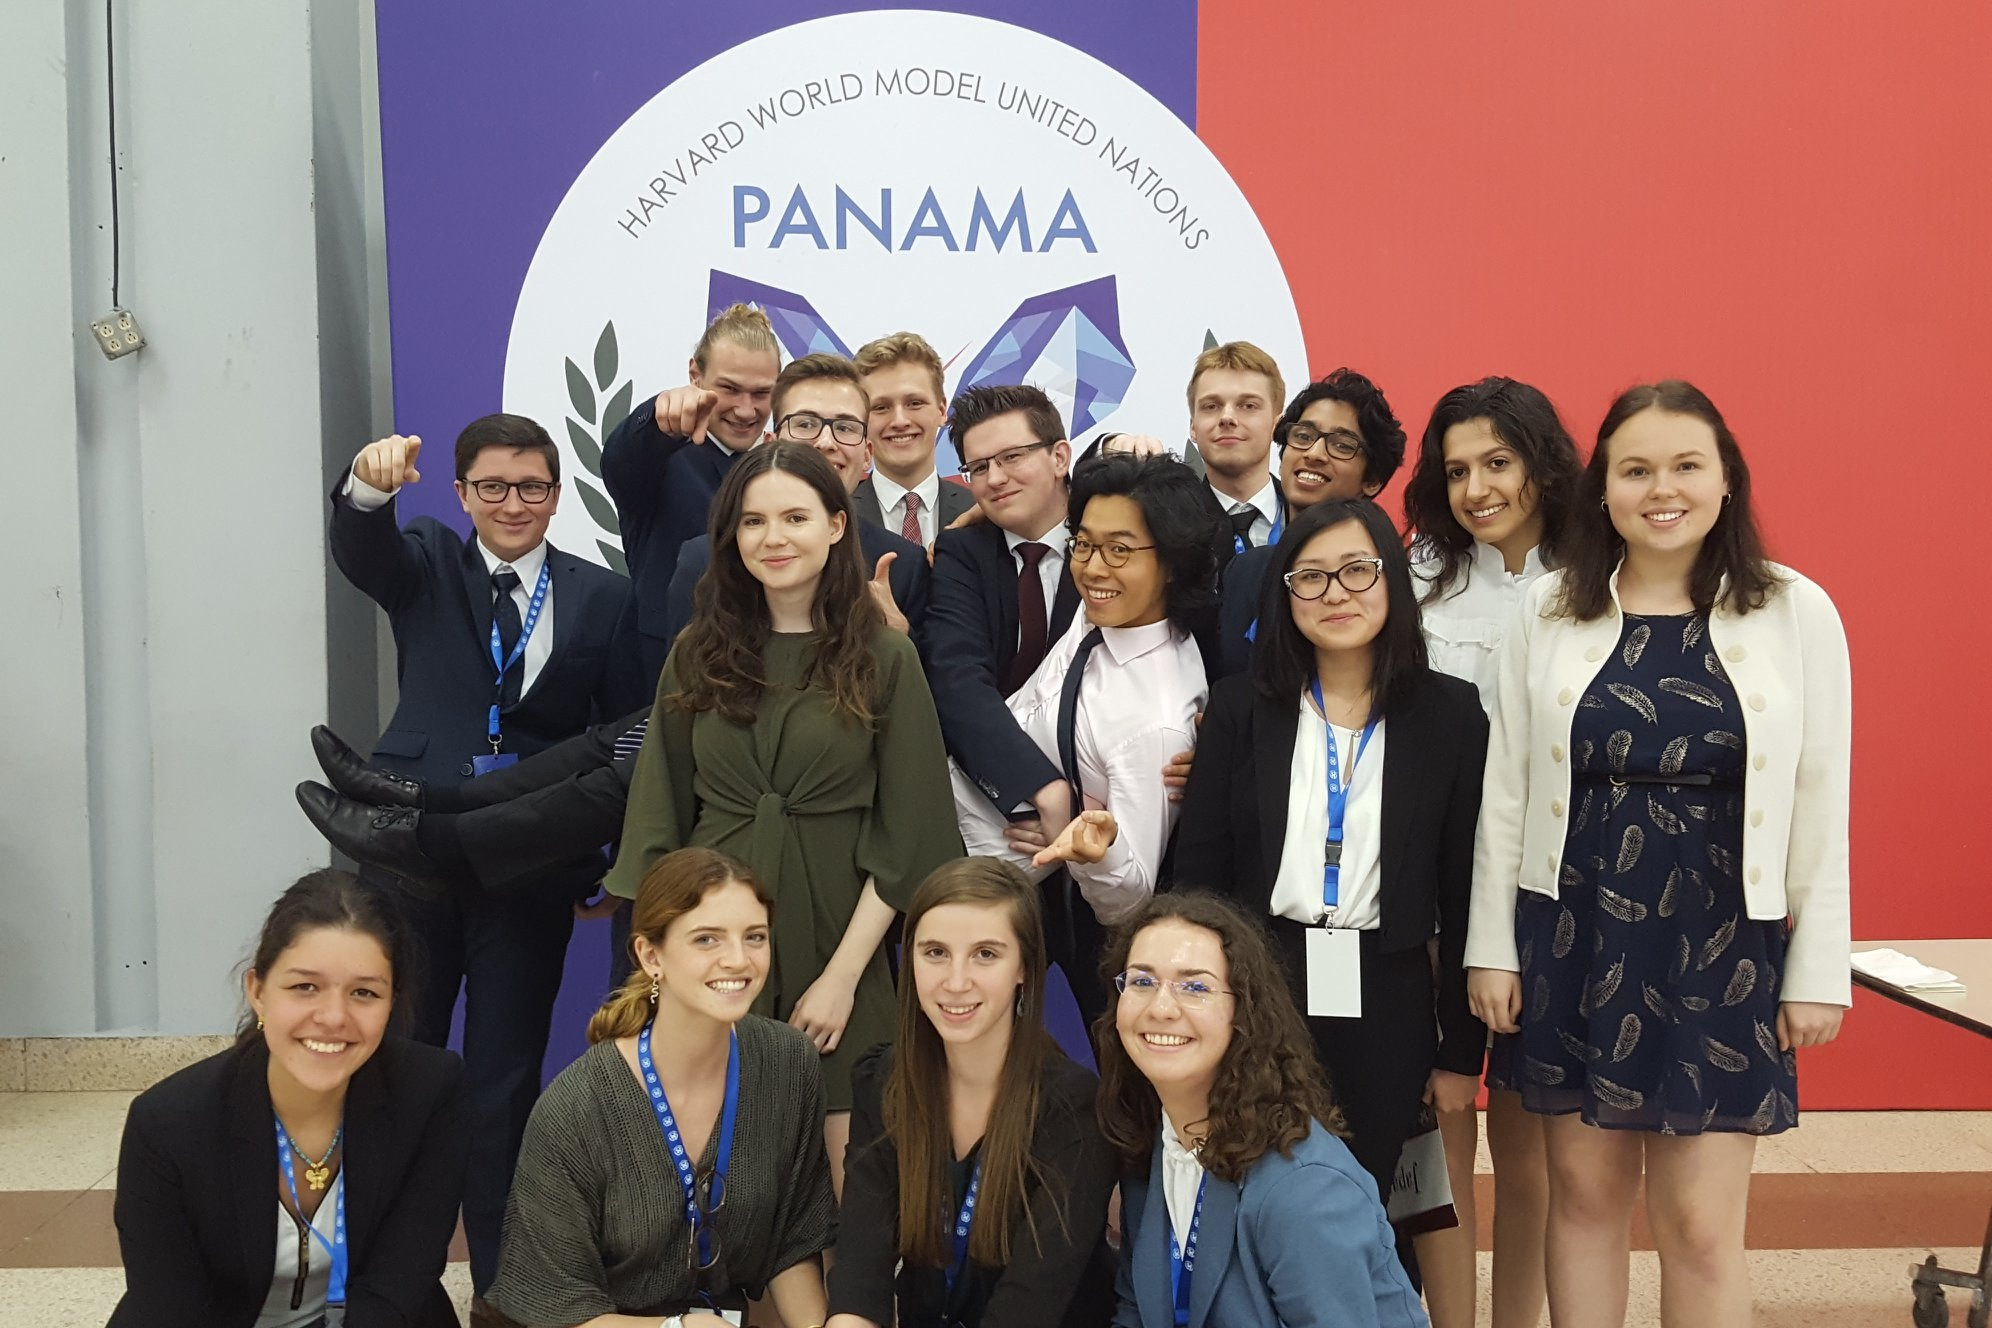 Travel - With MUN, you will get an excellent chance to see many different cities and countries all over the world. For instance, while taking part in the Harvard WorldMUN, the MUN Mannheim's delegation has travelled everywhere, from Canada and Panama to Italy. Next destination: Tokyo, Japan.